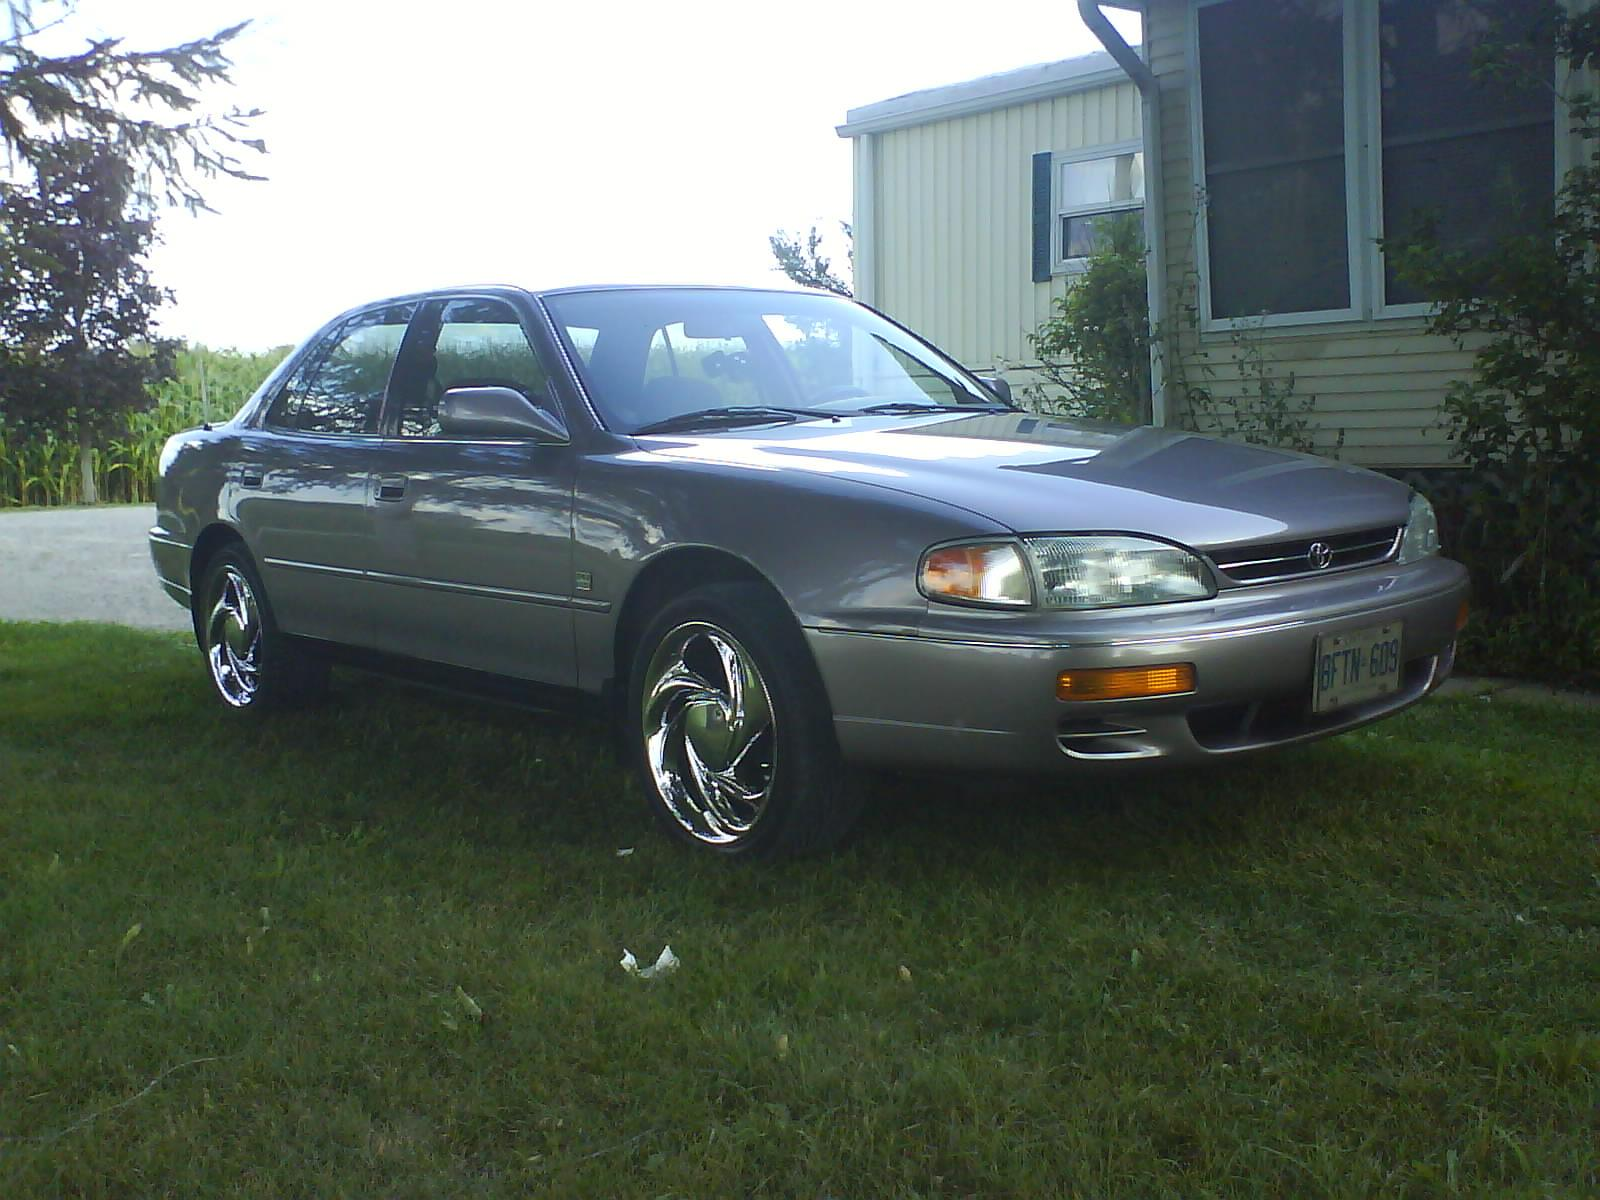 rob1984 39 s 1996 toyota camry in goderich on. Black Bedroom Furniture Sets. Home Design Ideas